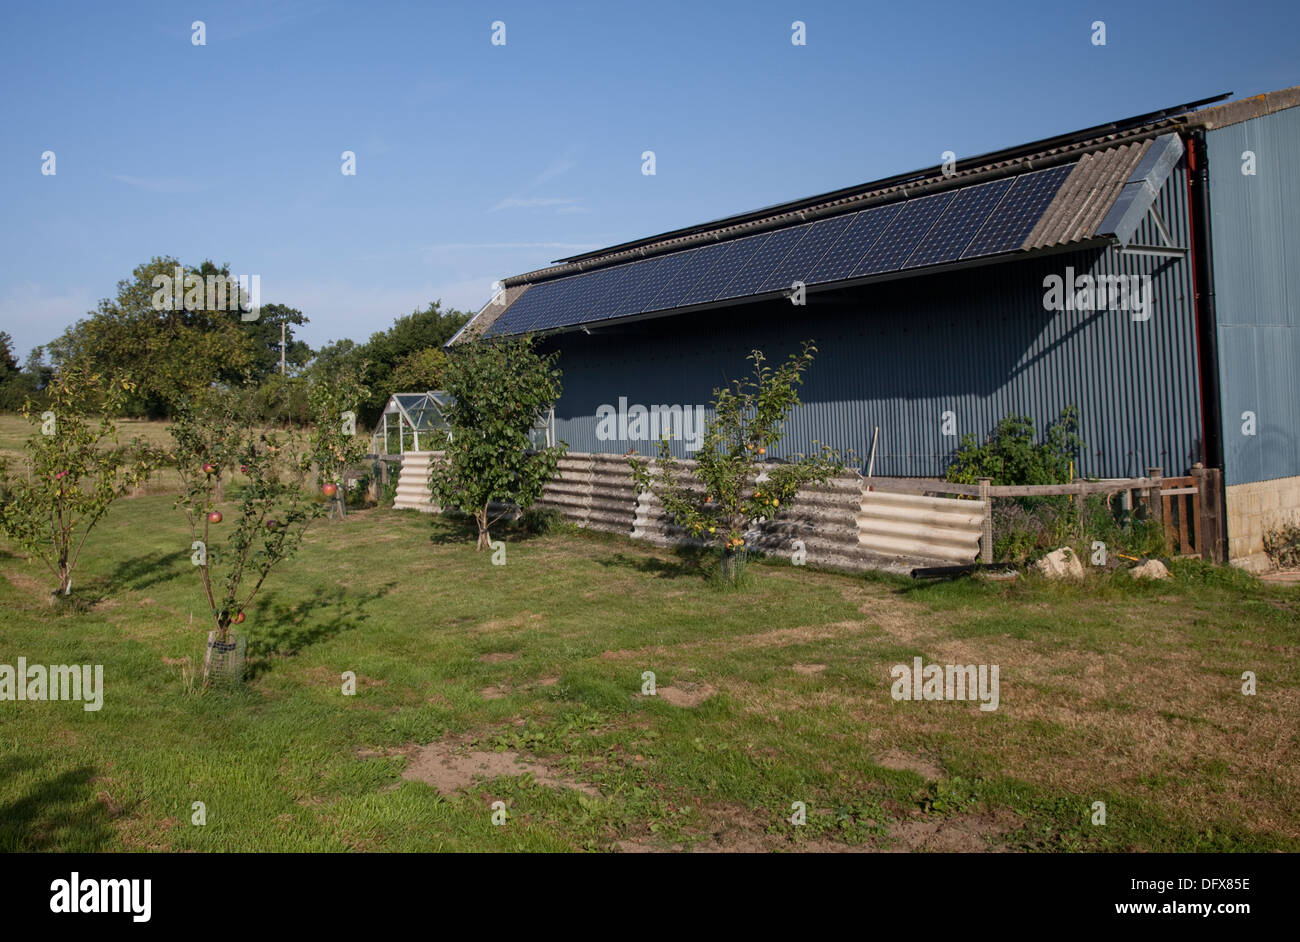 PV photovoltaic panels on roof of steel barn new eco build Mickleton UK - Stock Image